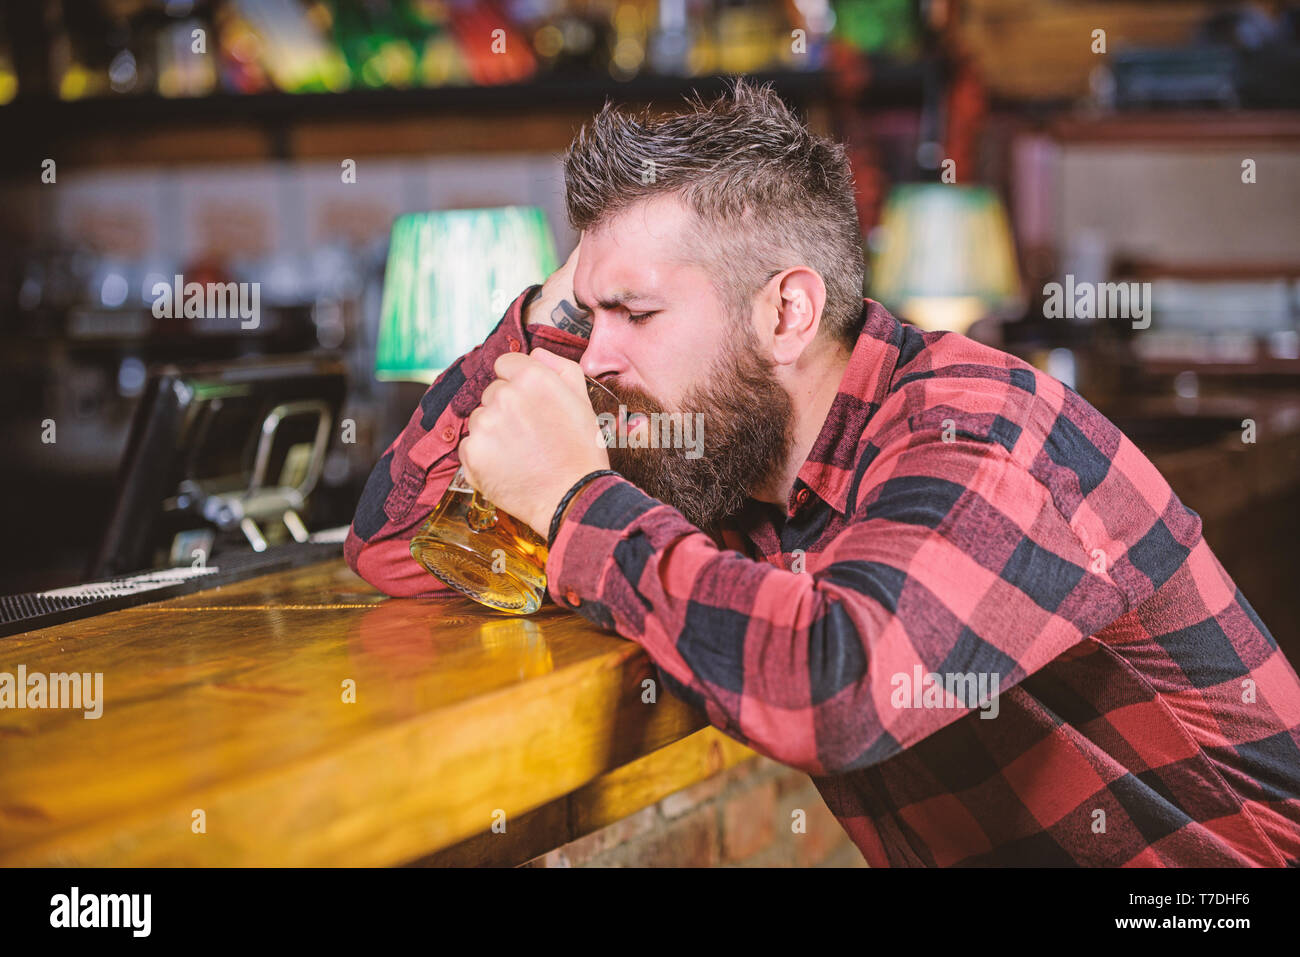 Man with beard spend leisure in dark bar. Brutal hipster bearded man sit at bar counter drink beer. Hipster relaxing at bar with beer. Order alcohol drink. Bar is relaxing place have drink and relax. - Stock Image